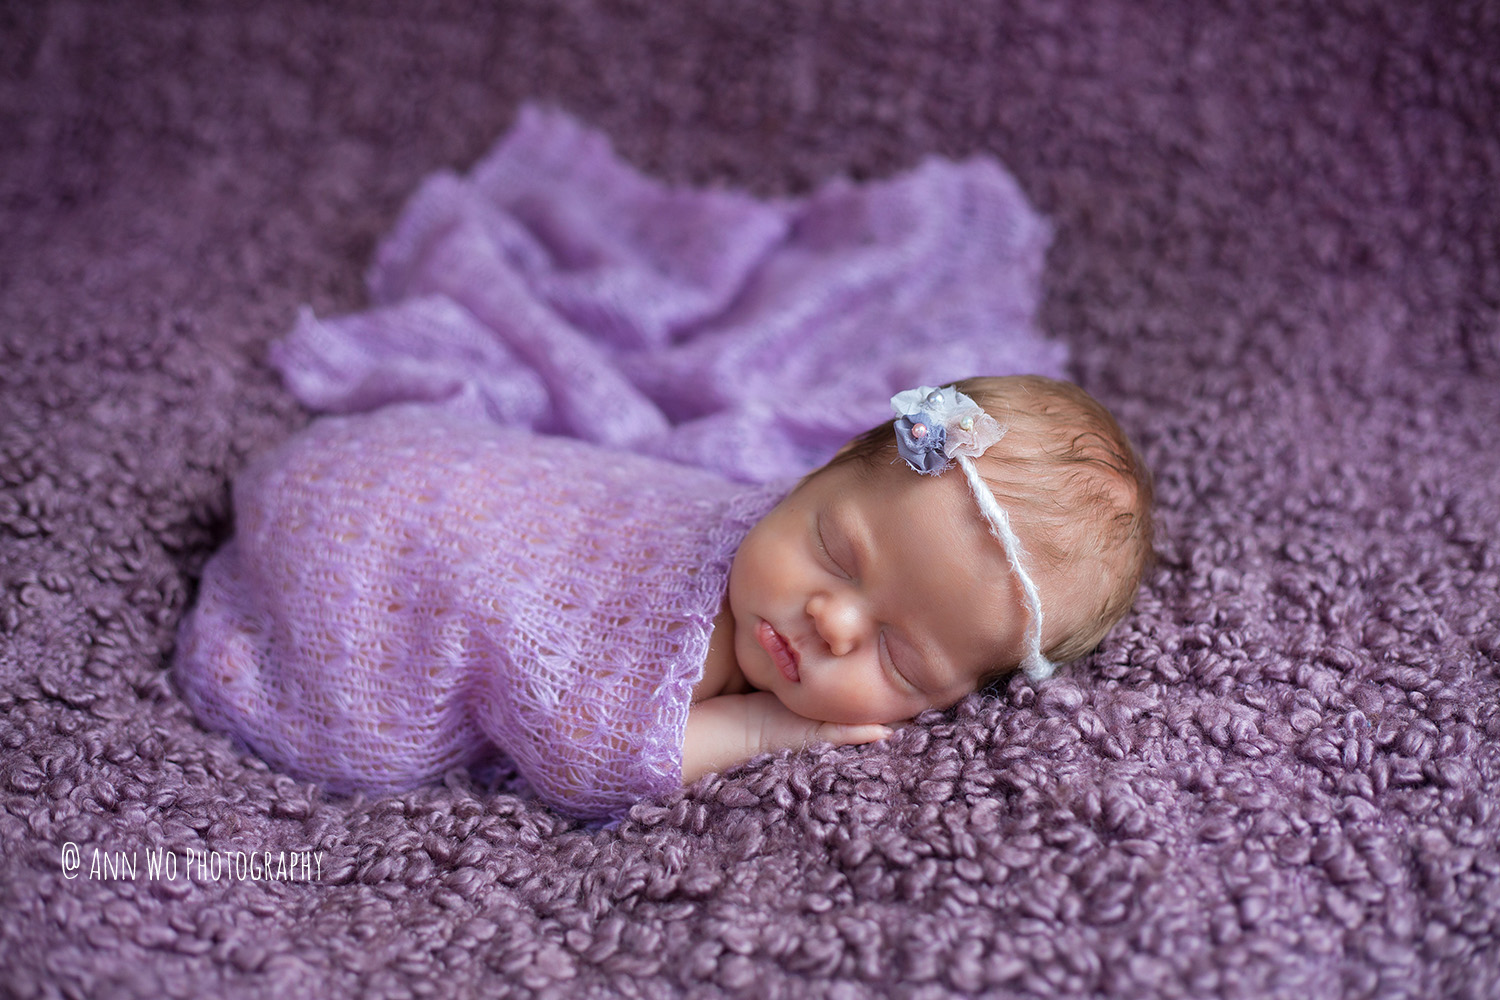 ann-wo-newborn-baby-photographer-maidenhead-9Apr2014-preview3.jpg